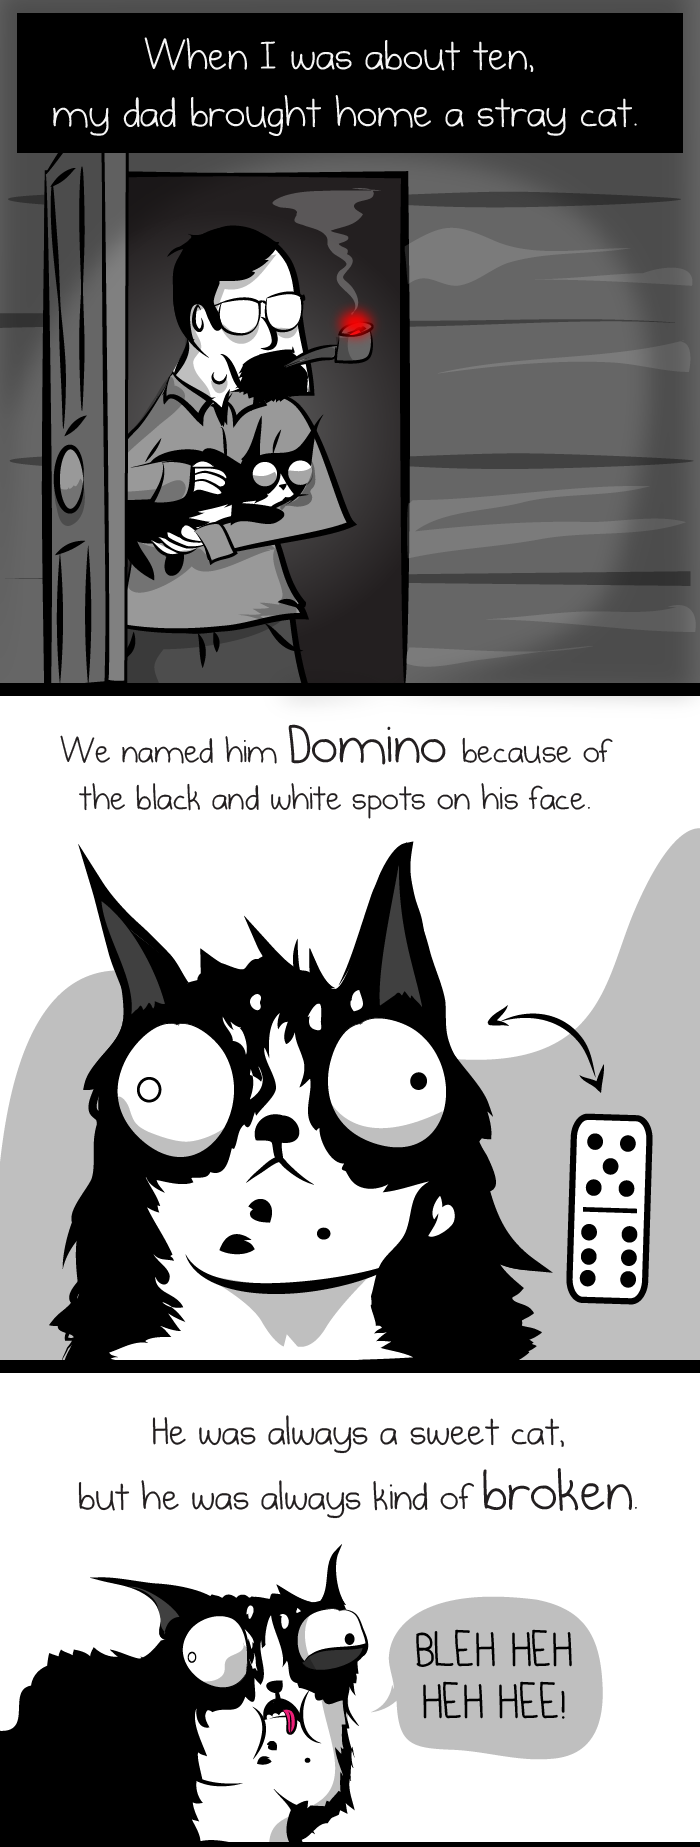 The Oatmeal - Domino's Story